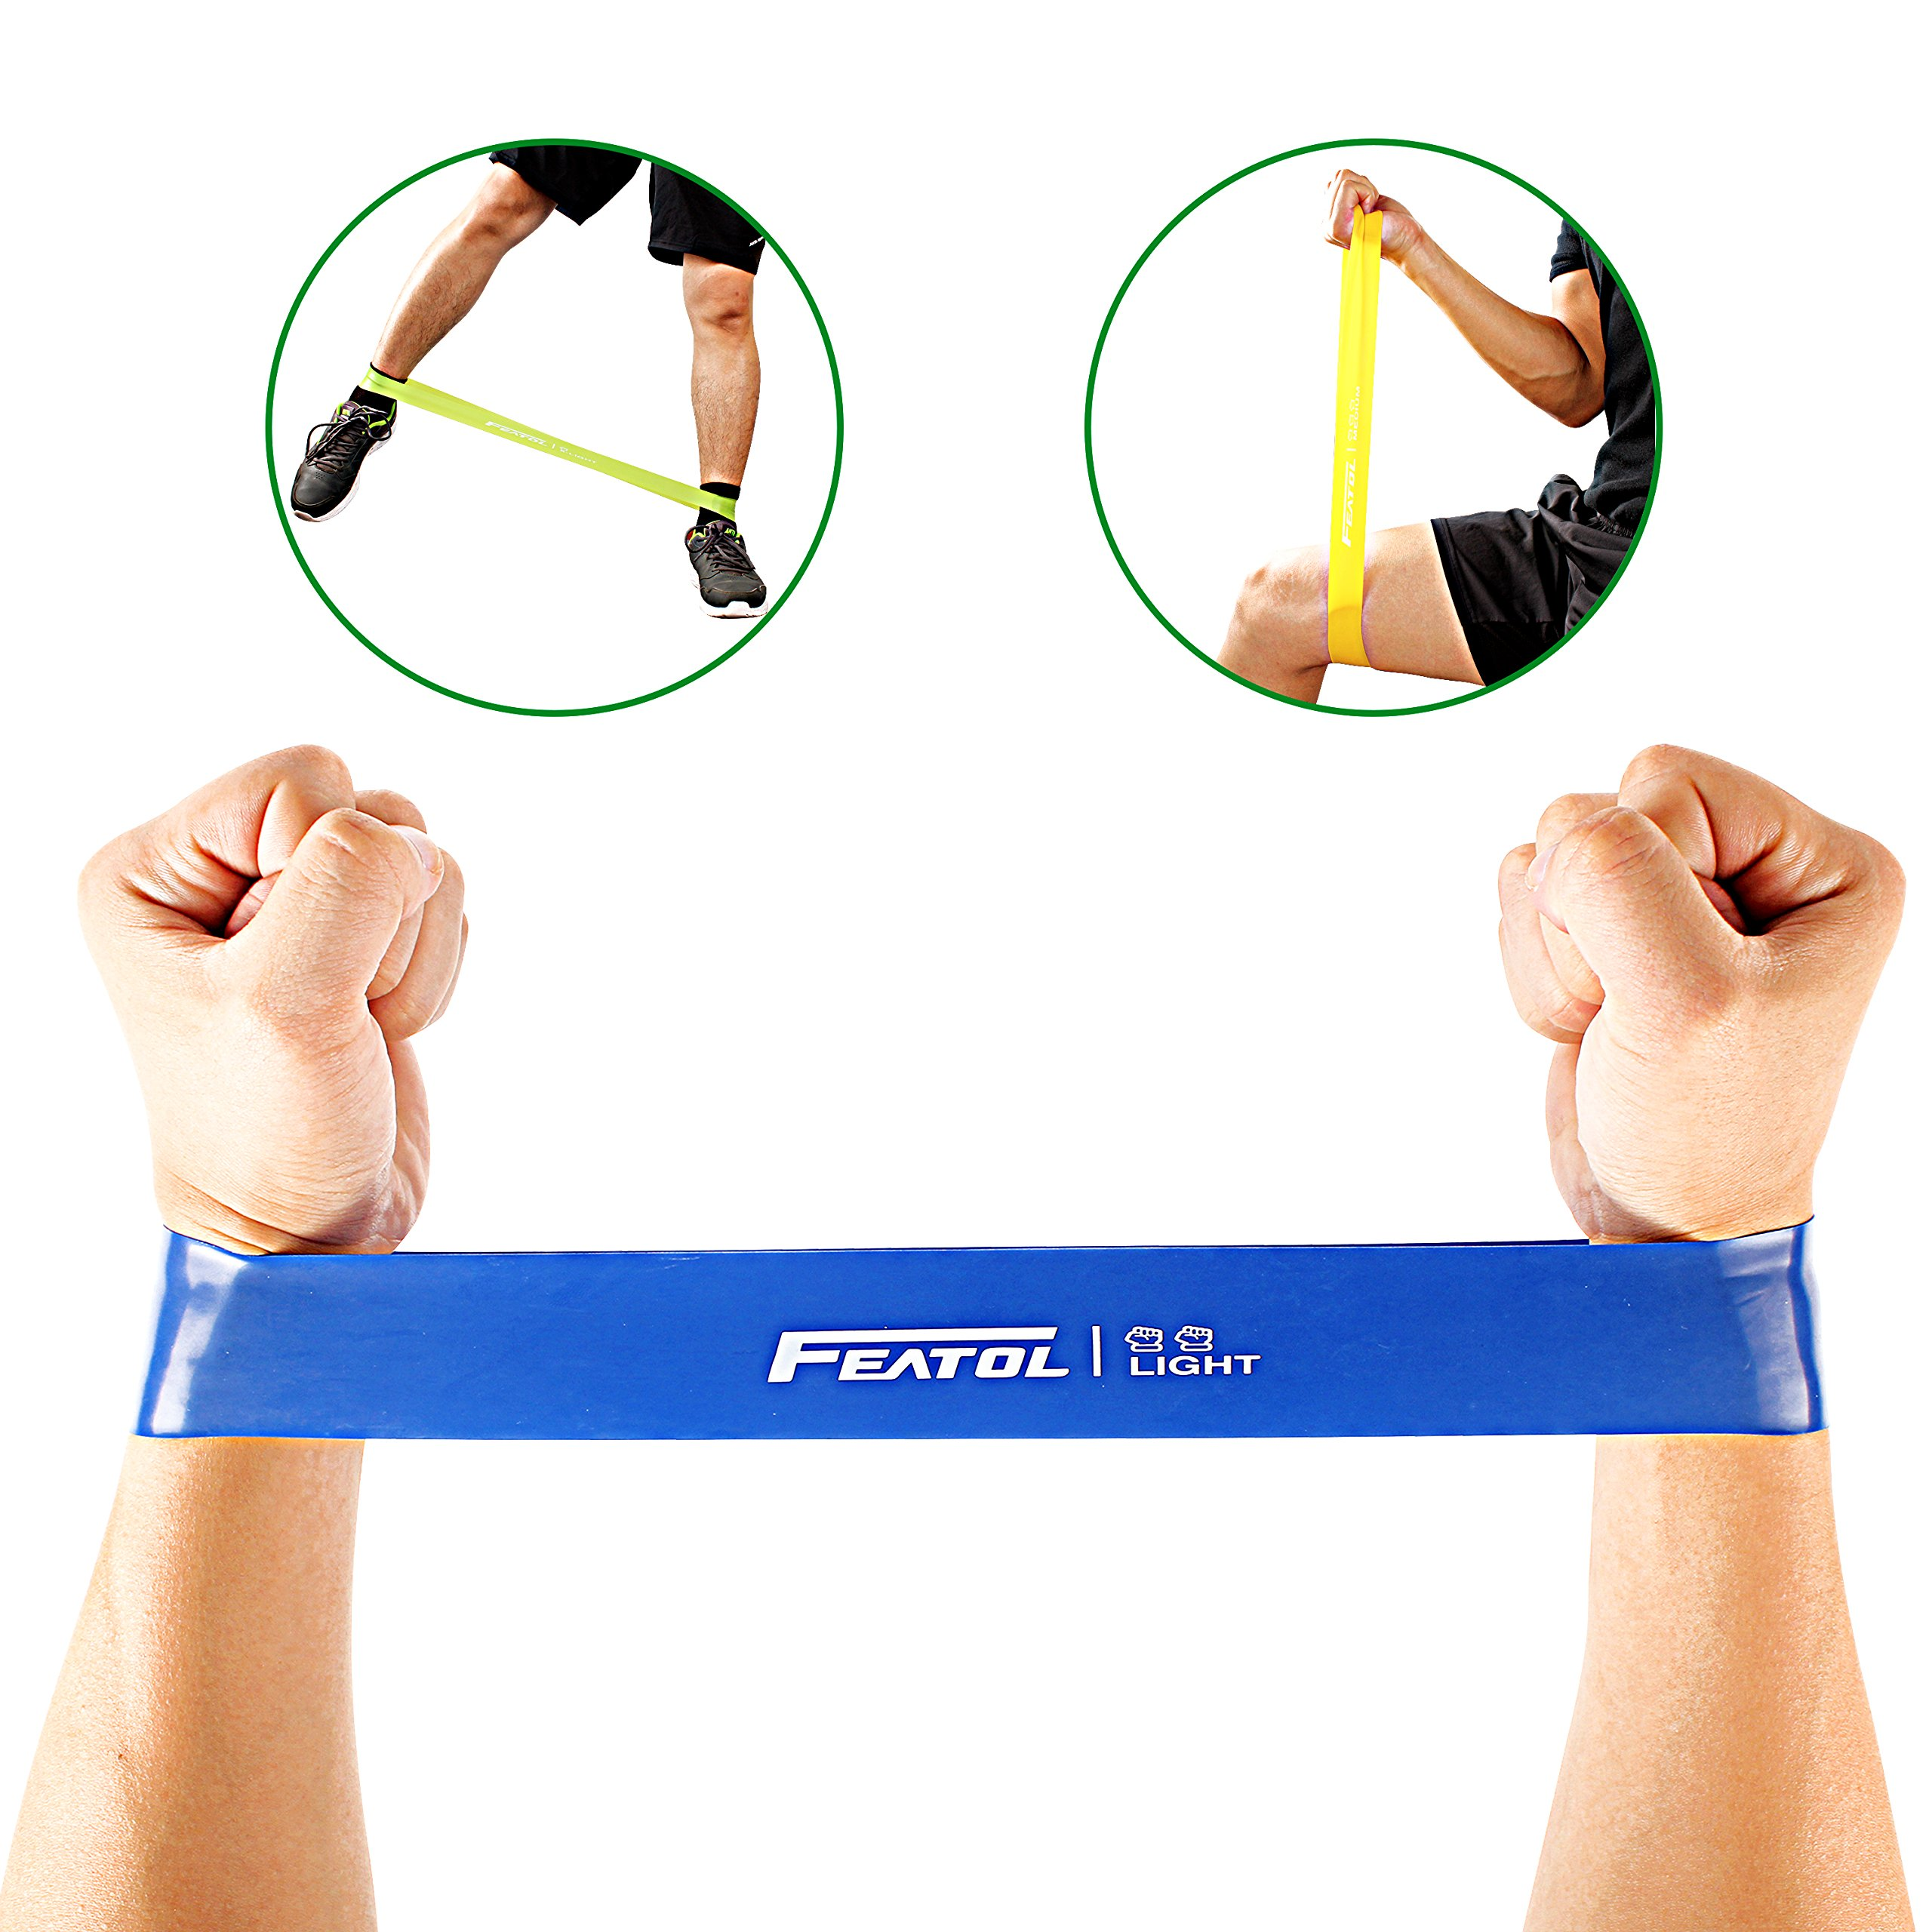 FEATOL Resistance Loop Bands- Set of 5 Premium Exercise Bands - Home& Gym Workout Bands for Yoga, Stretching and Physical Therapy, Suitable for Women and Men, Includes Exercise Guides& Handy Carry Bag by FEATOL (Image #3)